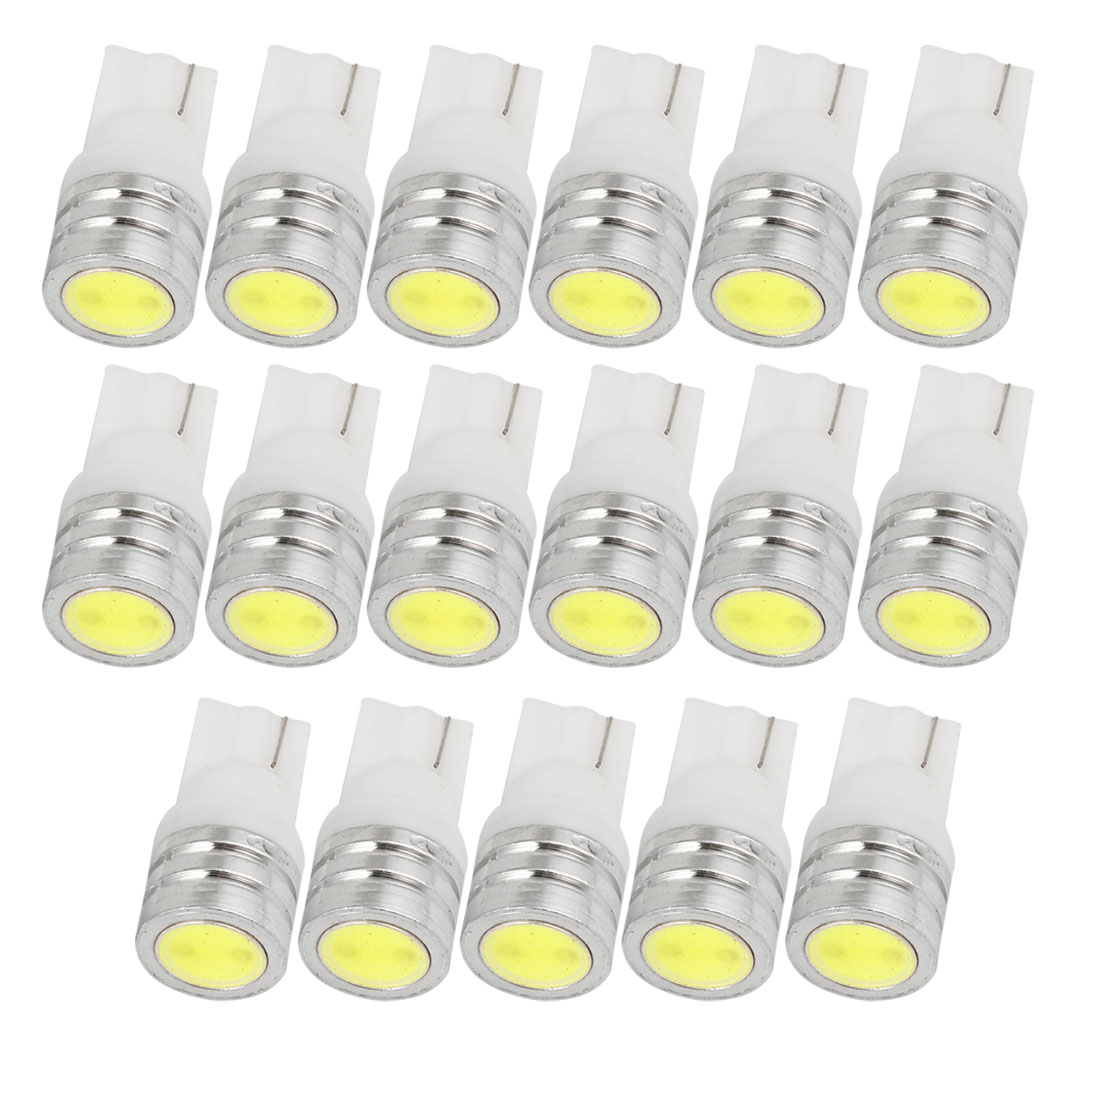 20 Pcs 12V 1W T10 Wedge LED Interior License Plate Signal Light White Internal